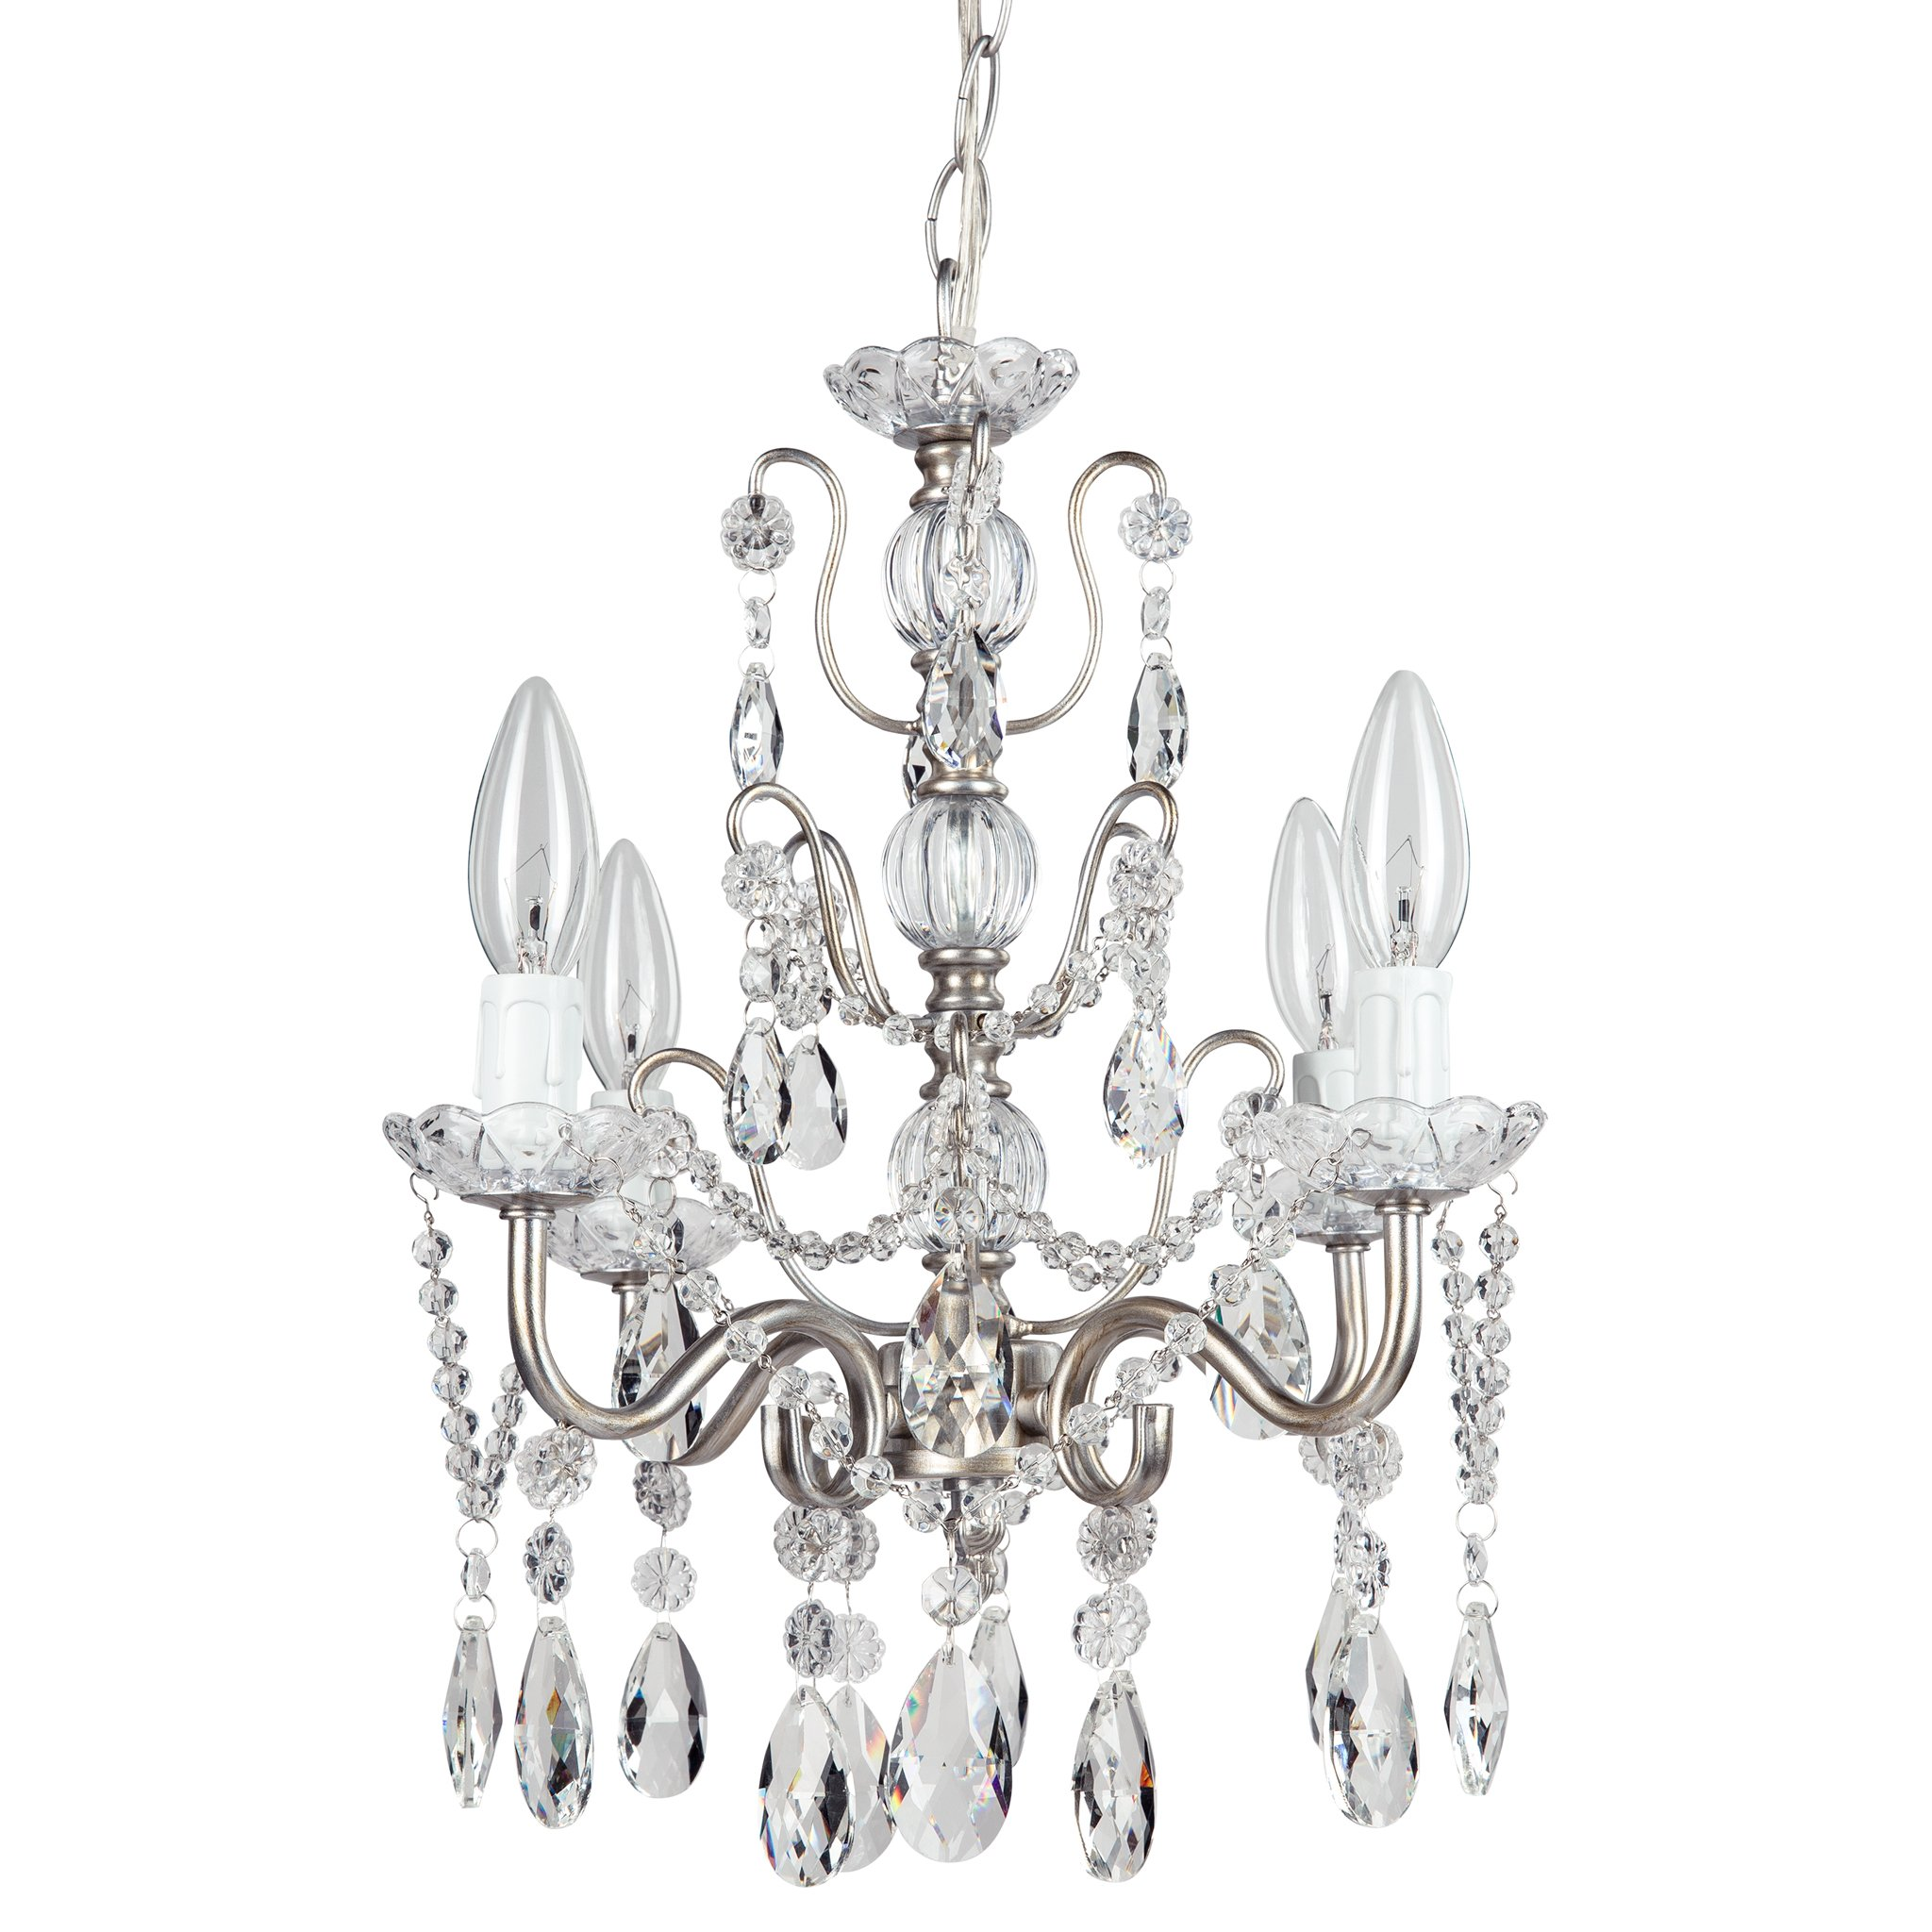 Madeleine Vintage Silver Crystal Chandelier, Mini Swag Plug-In Glass Pendant 4 Light Wrought Iron Ceiling Lighting Fixture Lamp